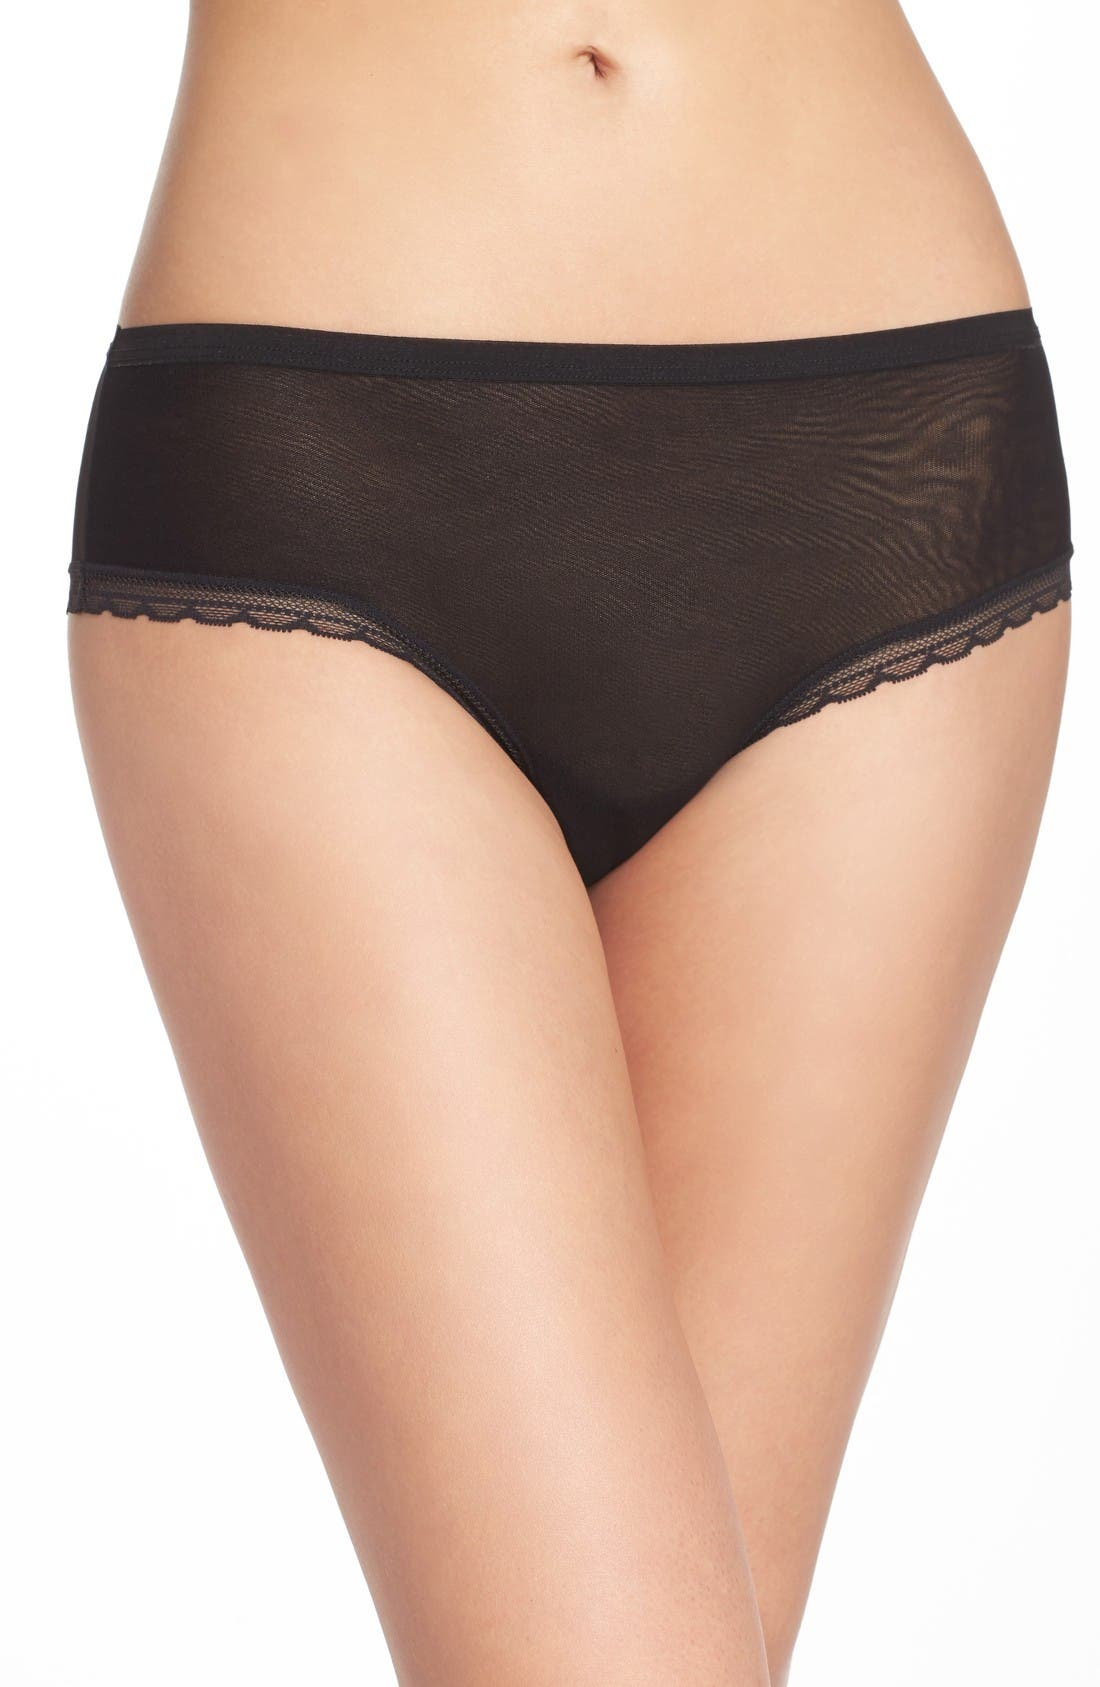 Main Image - On Gossamer Modern Mesh Panties (3 for $45)